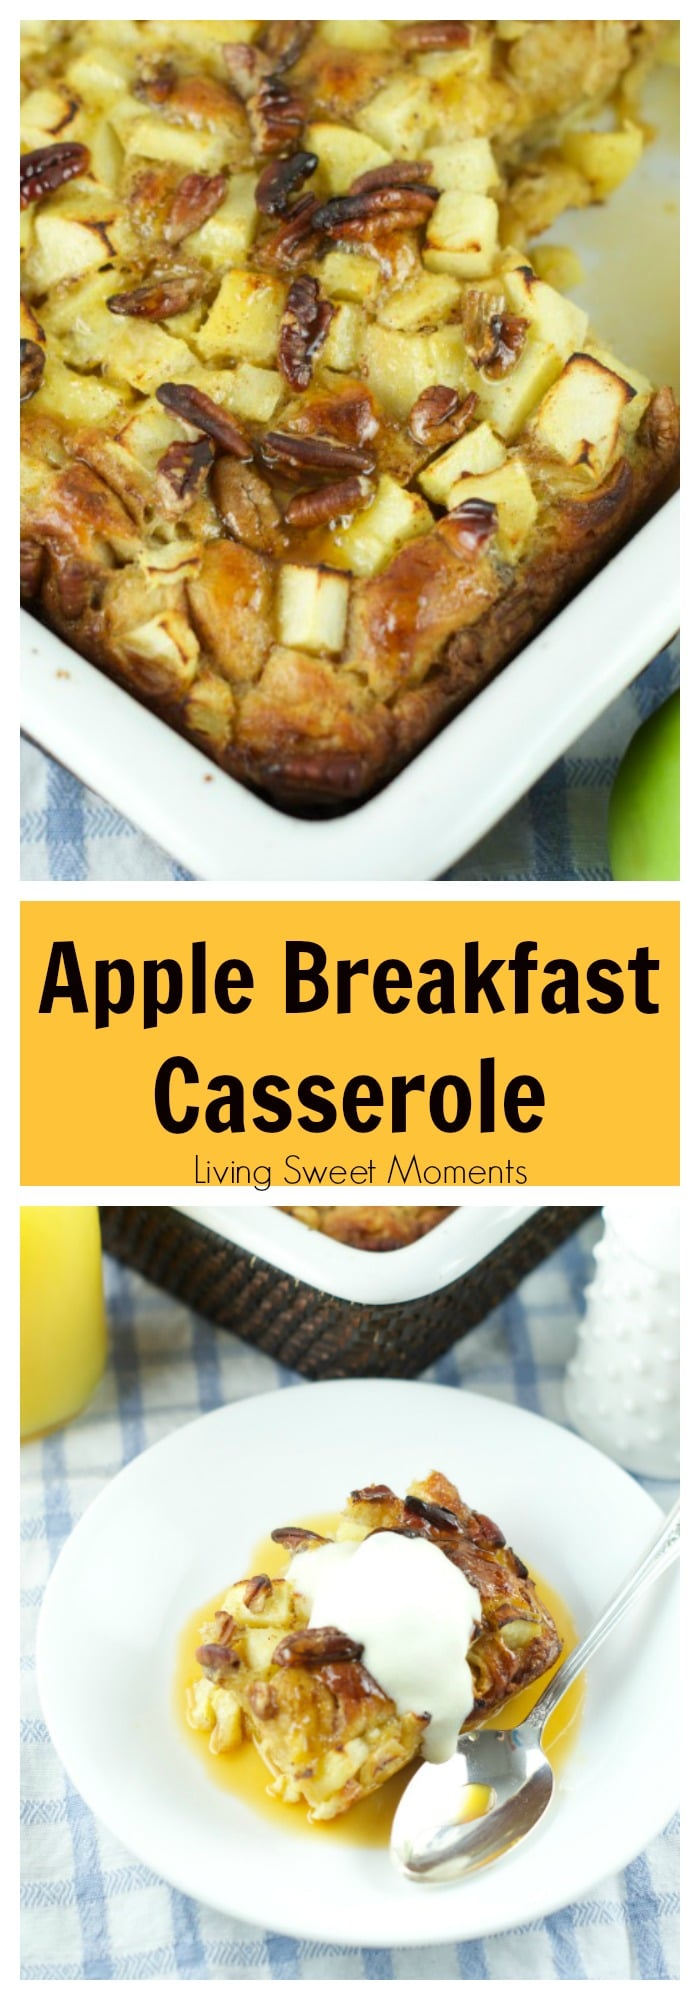 This delicious Cinnamon Apple bake with Orange Maple Glaze recipe is made with refrigerated cinnamon rolls. The perfect easy breakfast or brunch idea!